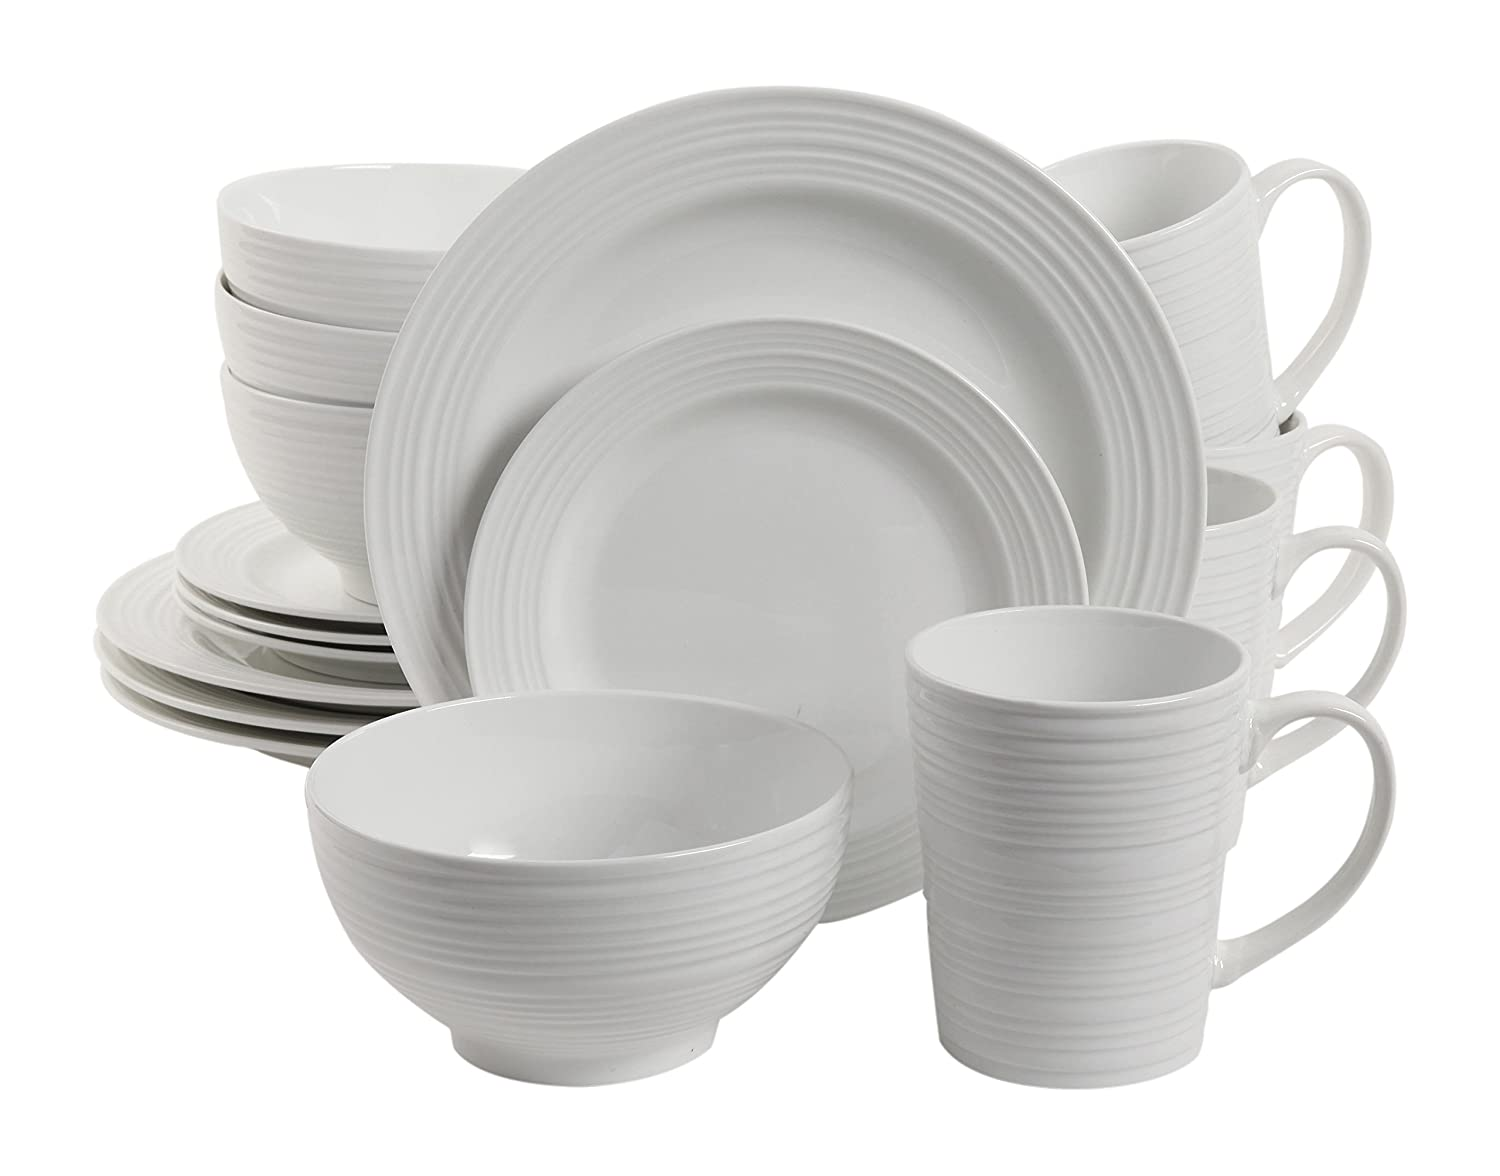 Amazon.com | Gibson Home 16 Piece Amelia Court Dinnerware Set White Dinnerware Sets  sc 1 st  Amazon.com & Amazon.com | Gibson Home 16 Piece Amelia Court Dinnerware Set White ...